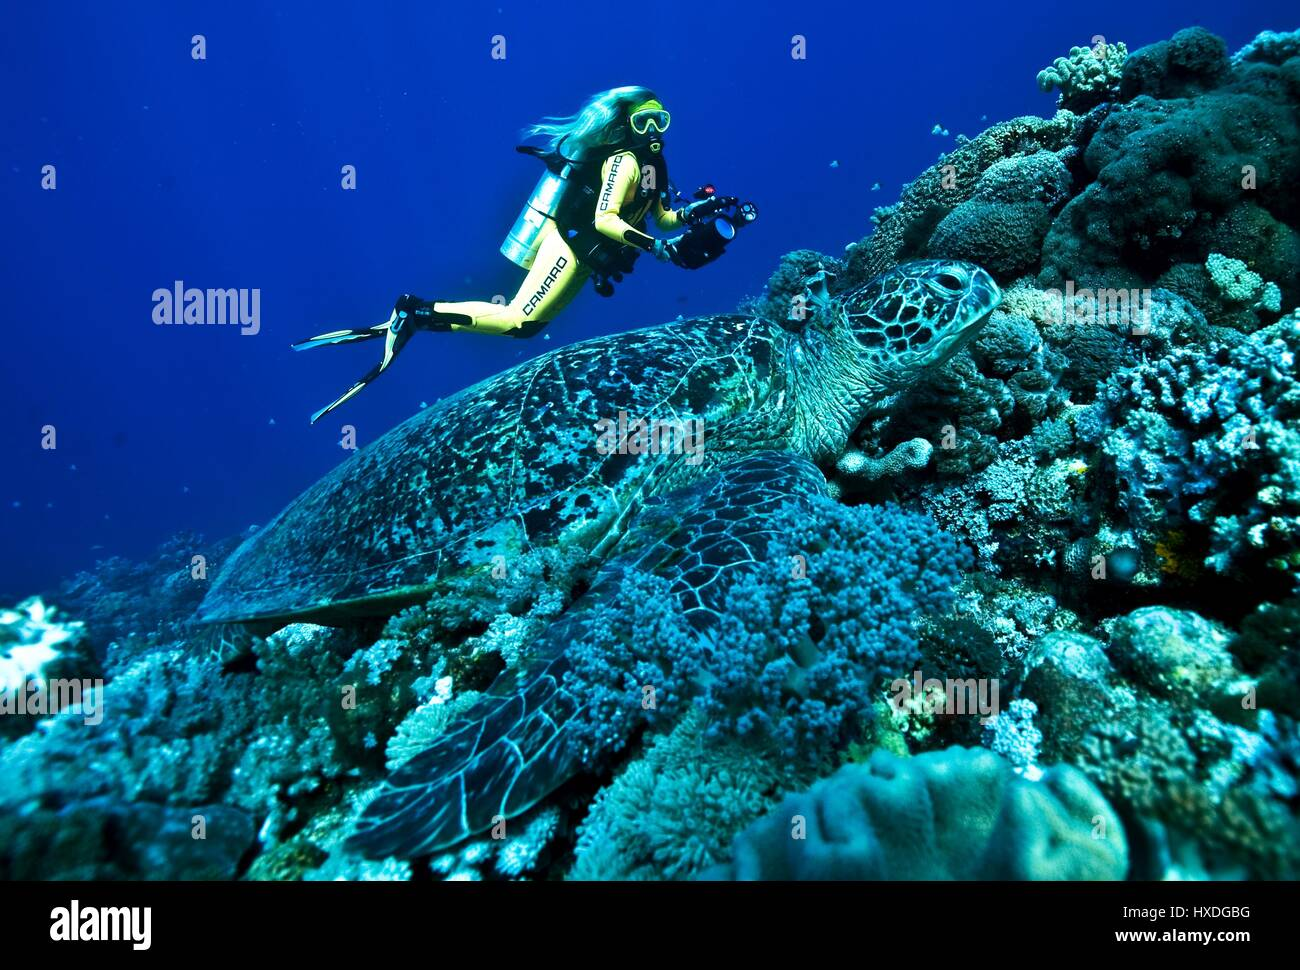 Female diver meets big green turtle, Indo Pacific - Stock Image